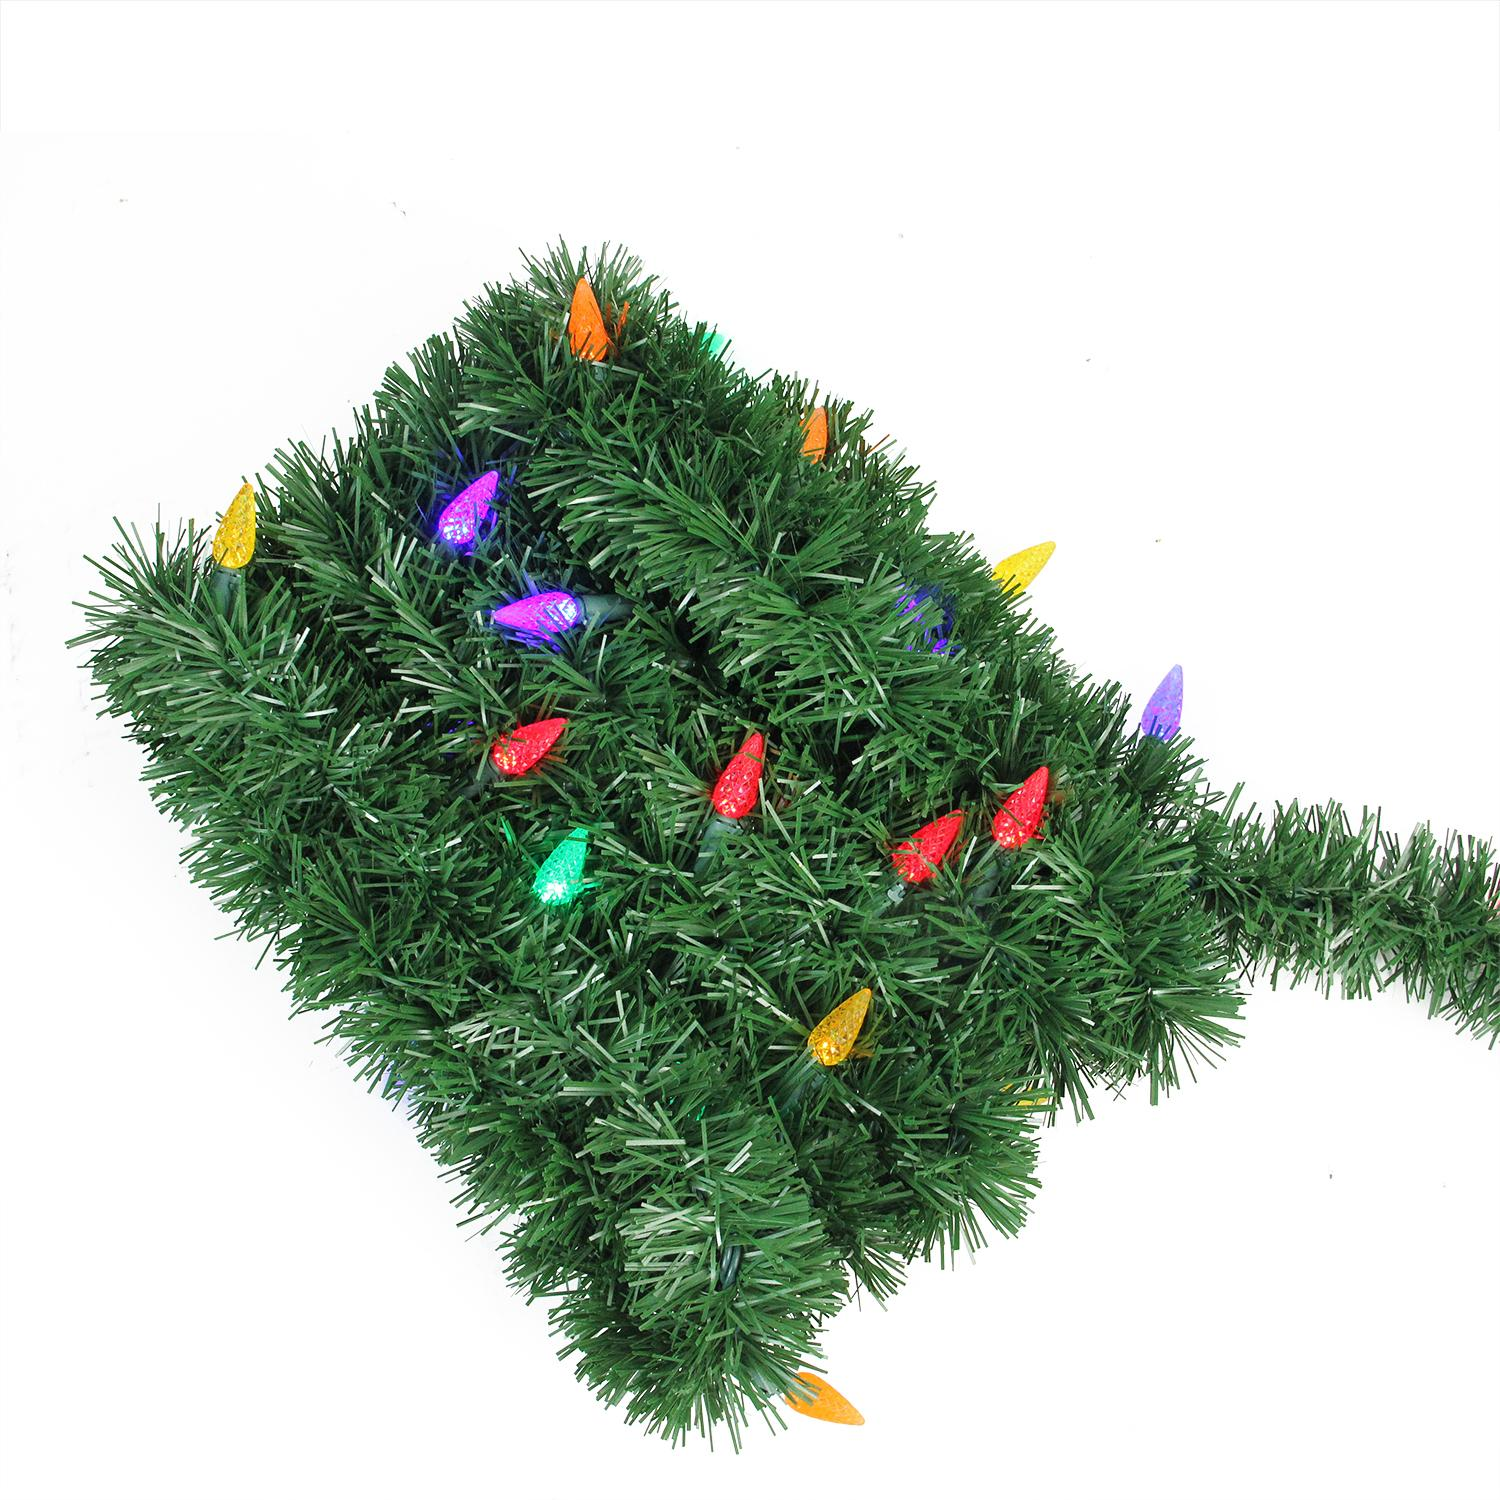 18' Pre-Lit Green Pine Artificial Christmas Garland - Multi LED C6 Lights